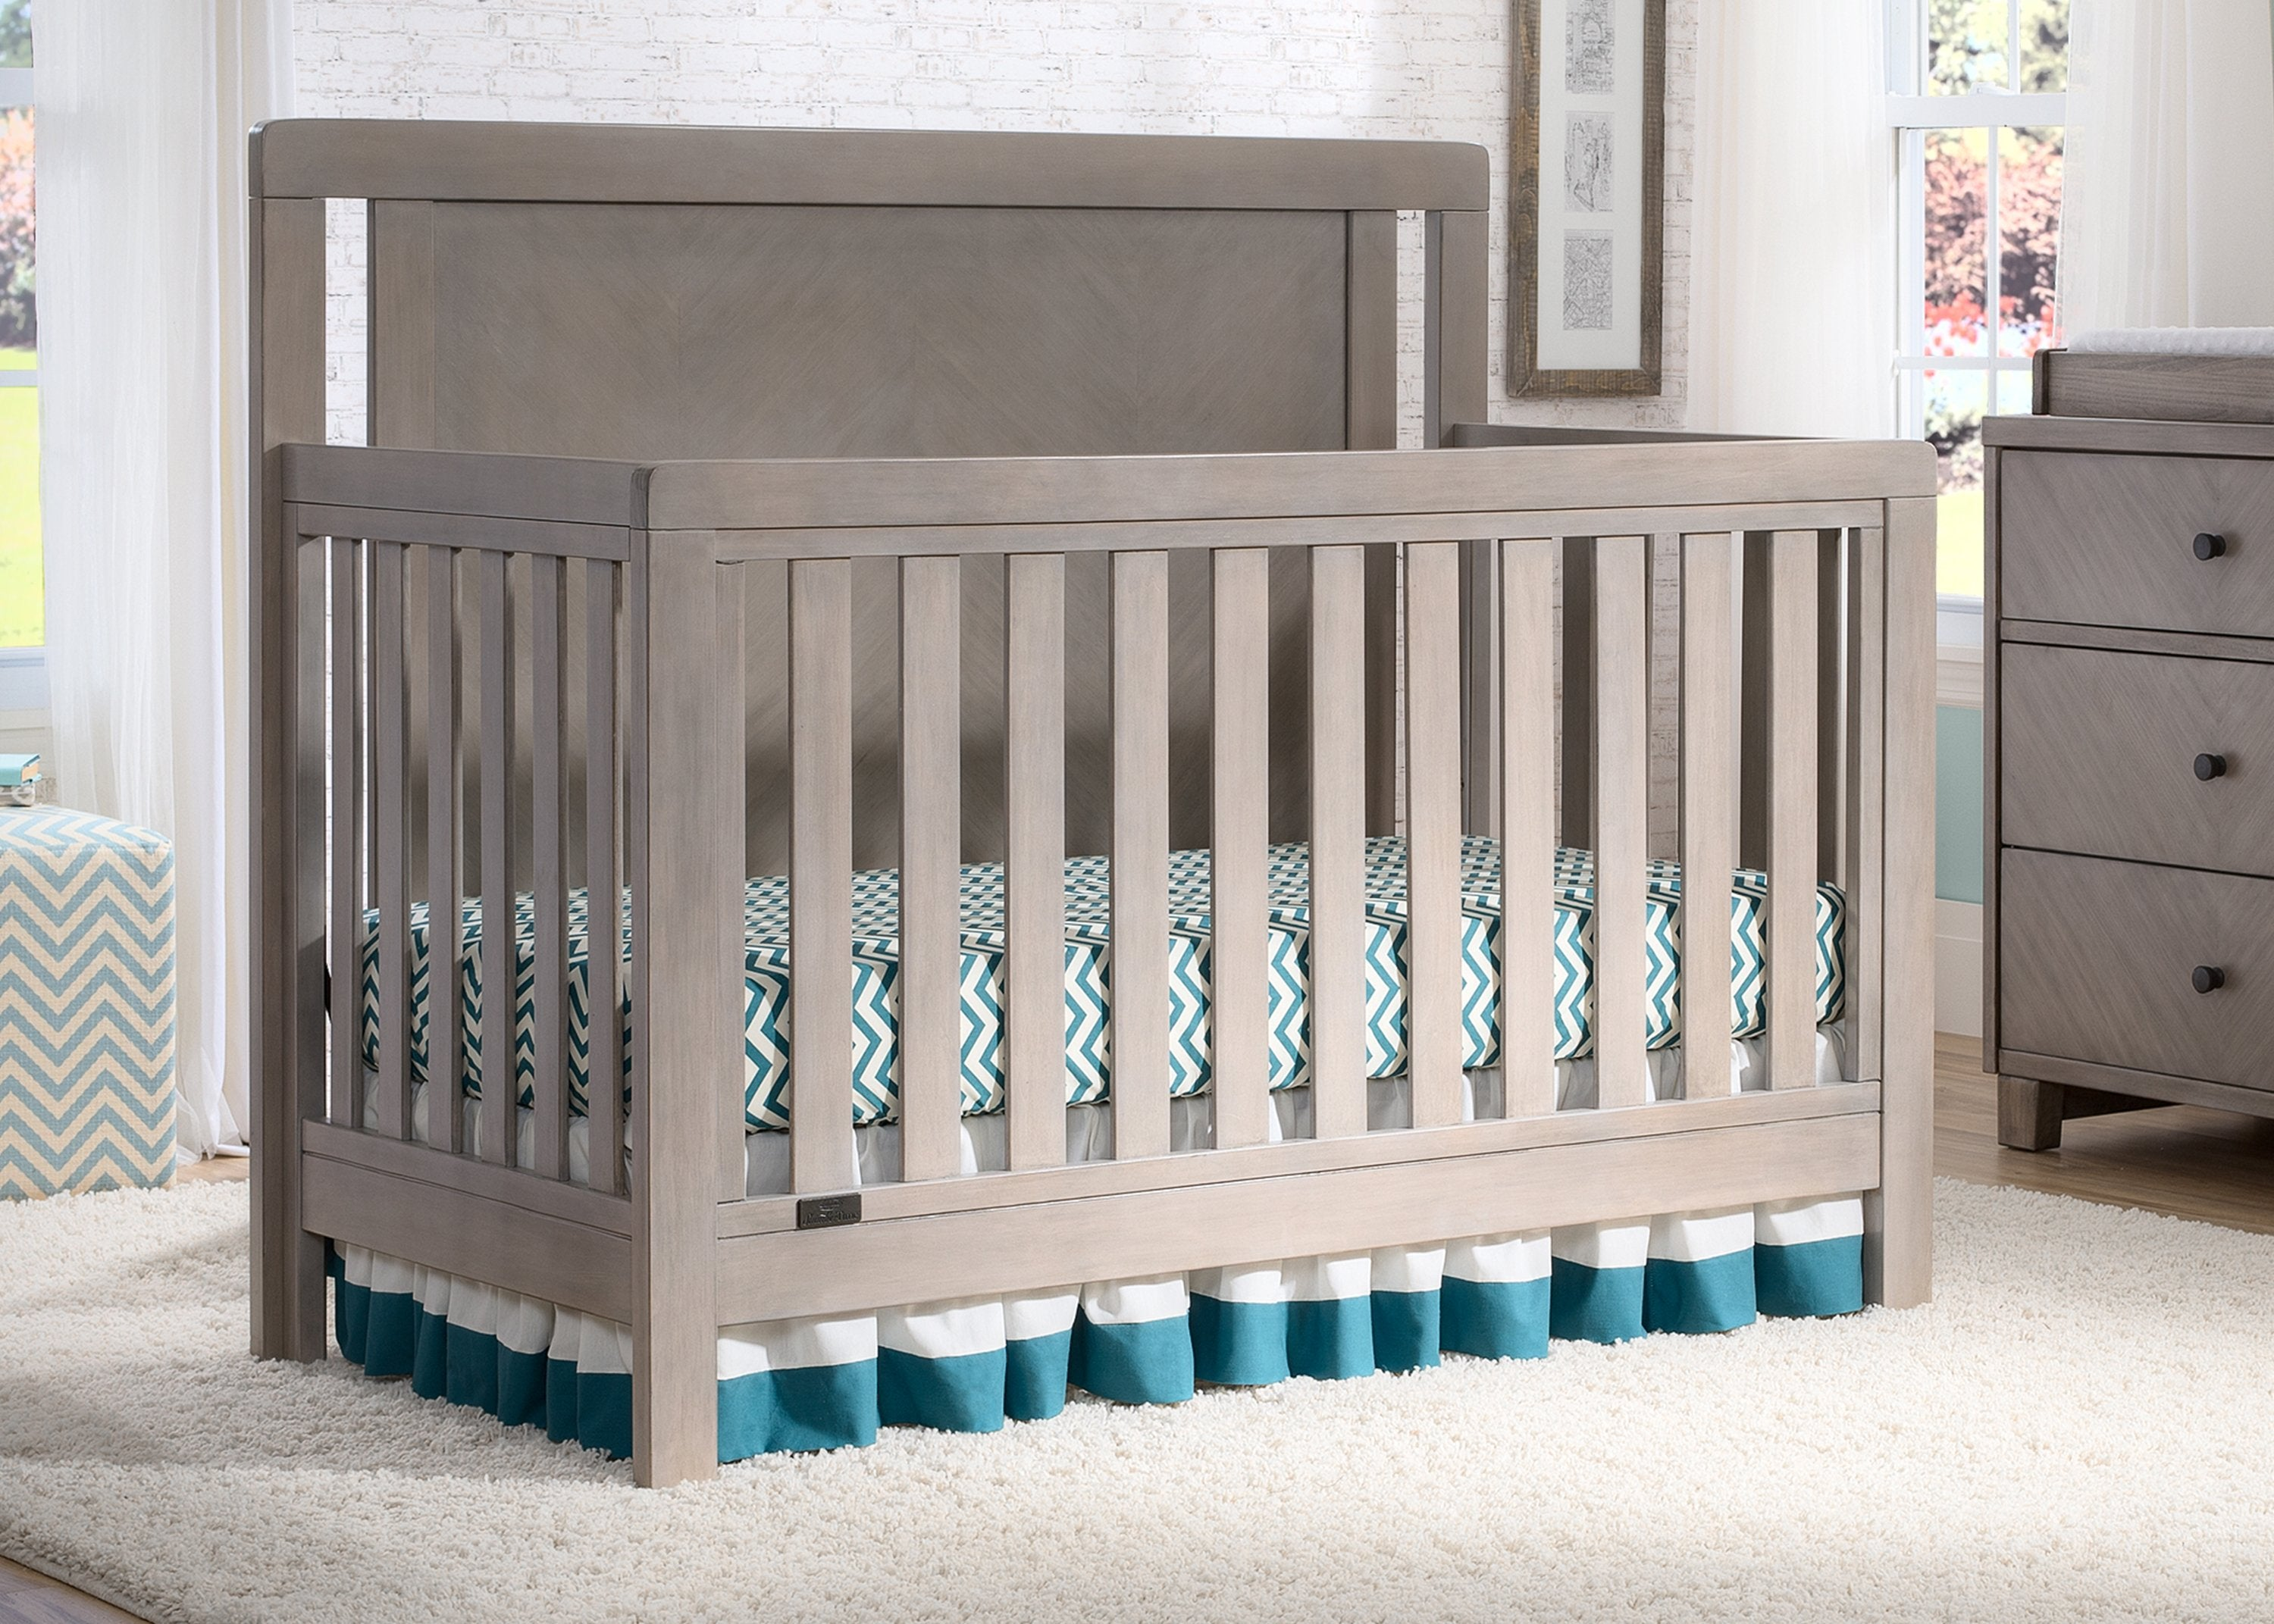 as along crib rocking small baby adorable wells dk babies swish picib long cribs cribsnursery with colors for images to drawer wooden groovy mini plus drawers